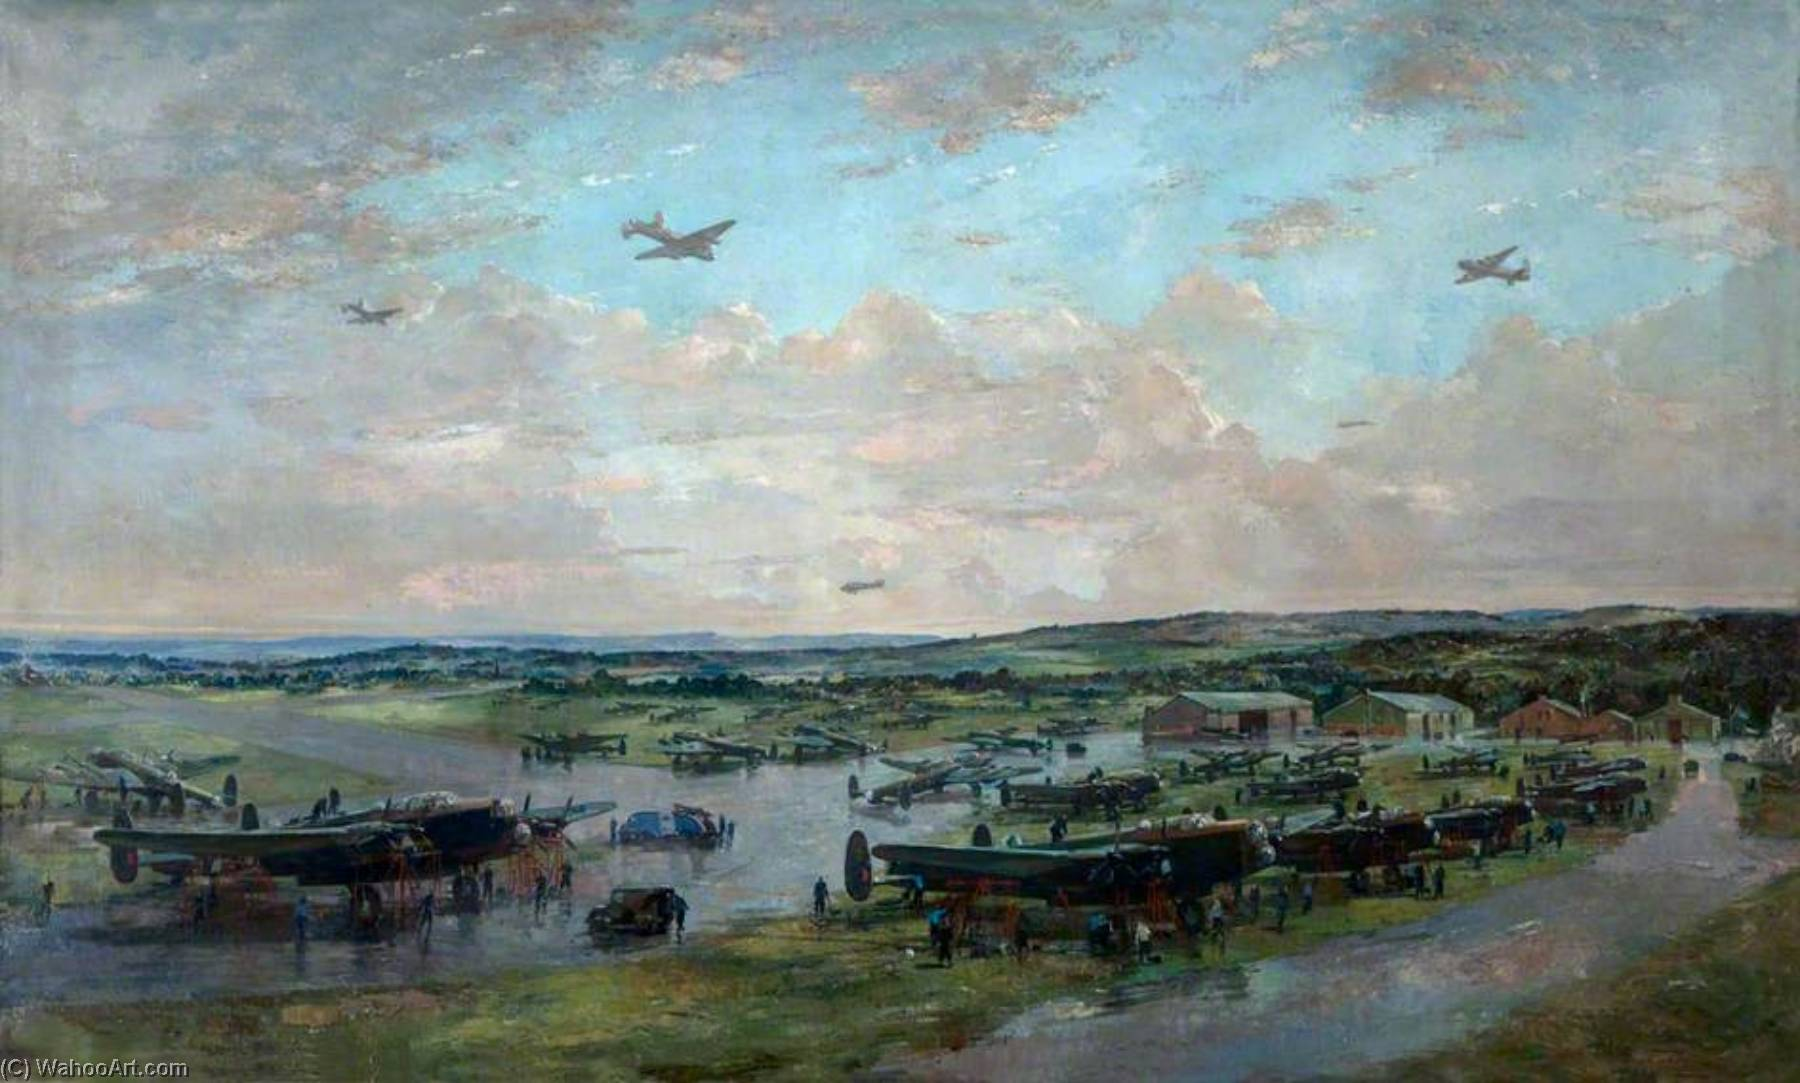 Lancasters, холст, масло по Charles Ernest Cundall